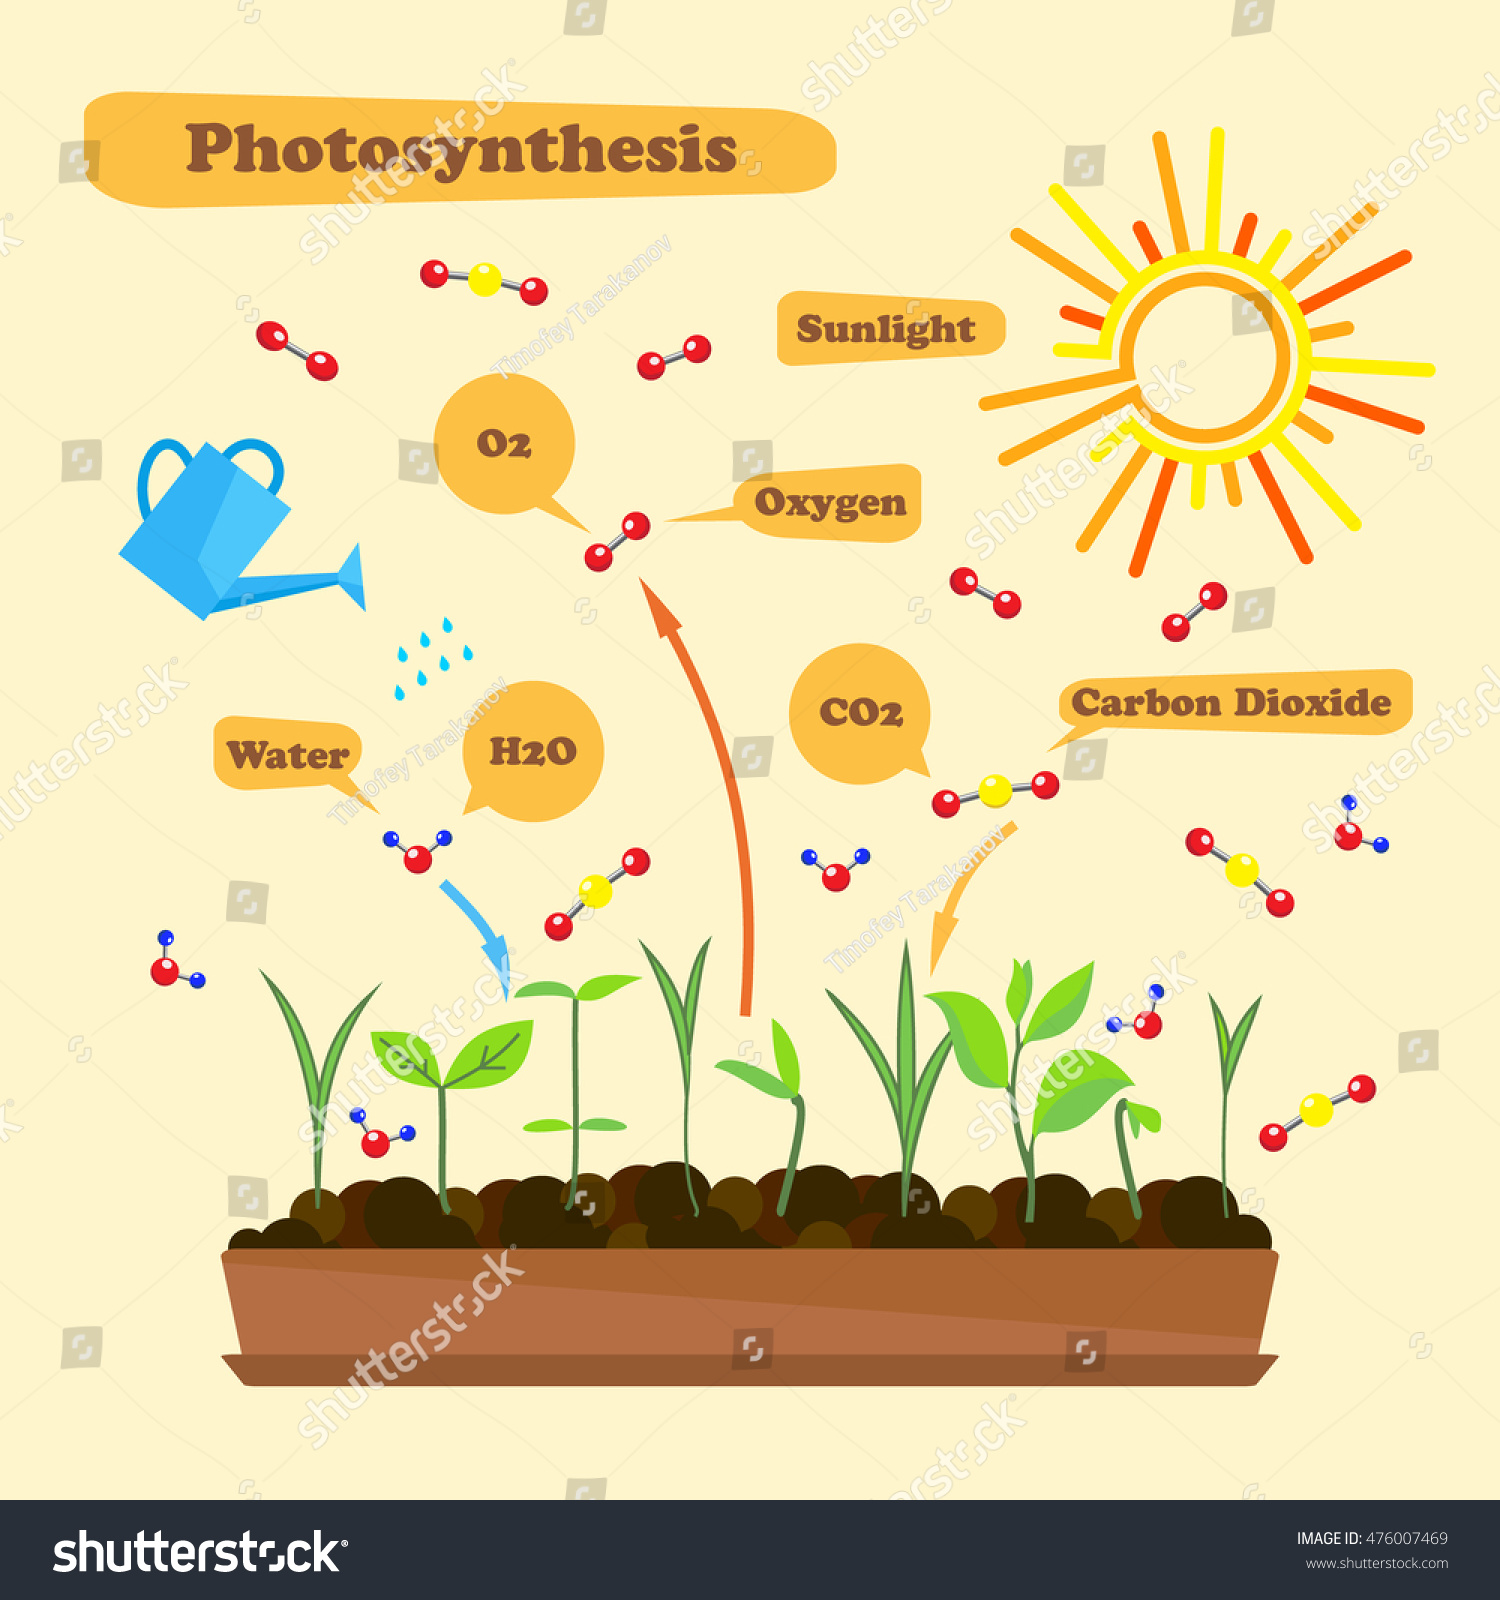 photosynthesis process diagram Photosynthesis converts light energy into the chemical energy of sugars and other organic compounds this process consists of a series of chemical reactions that.